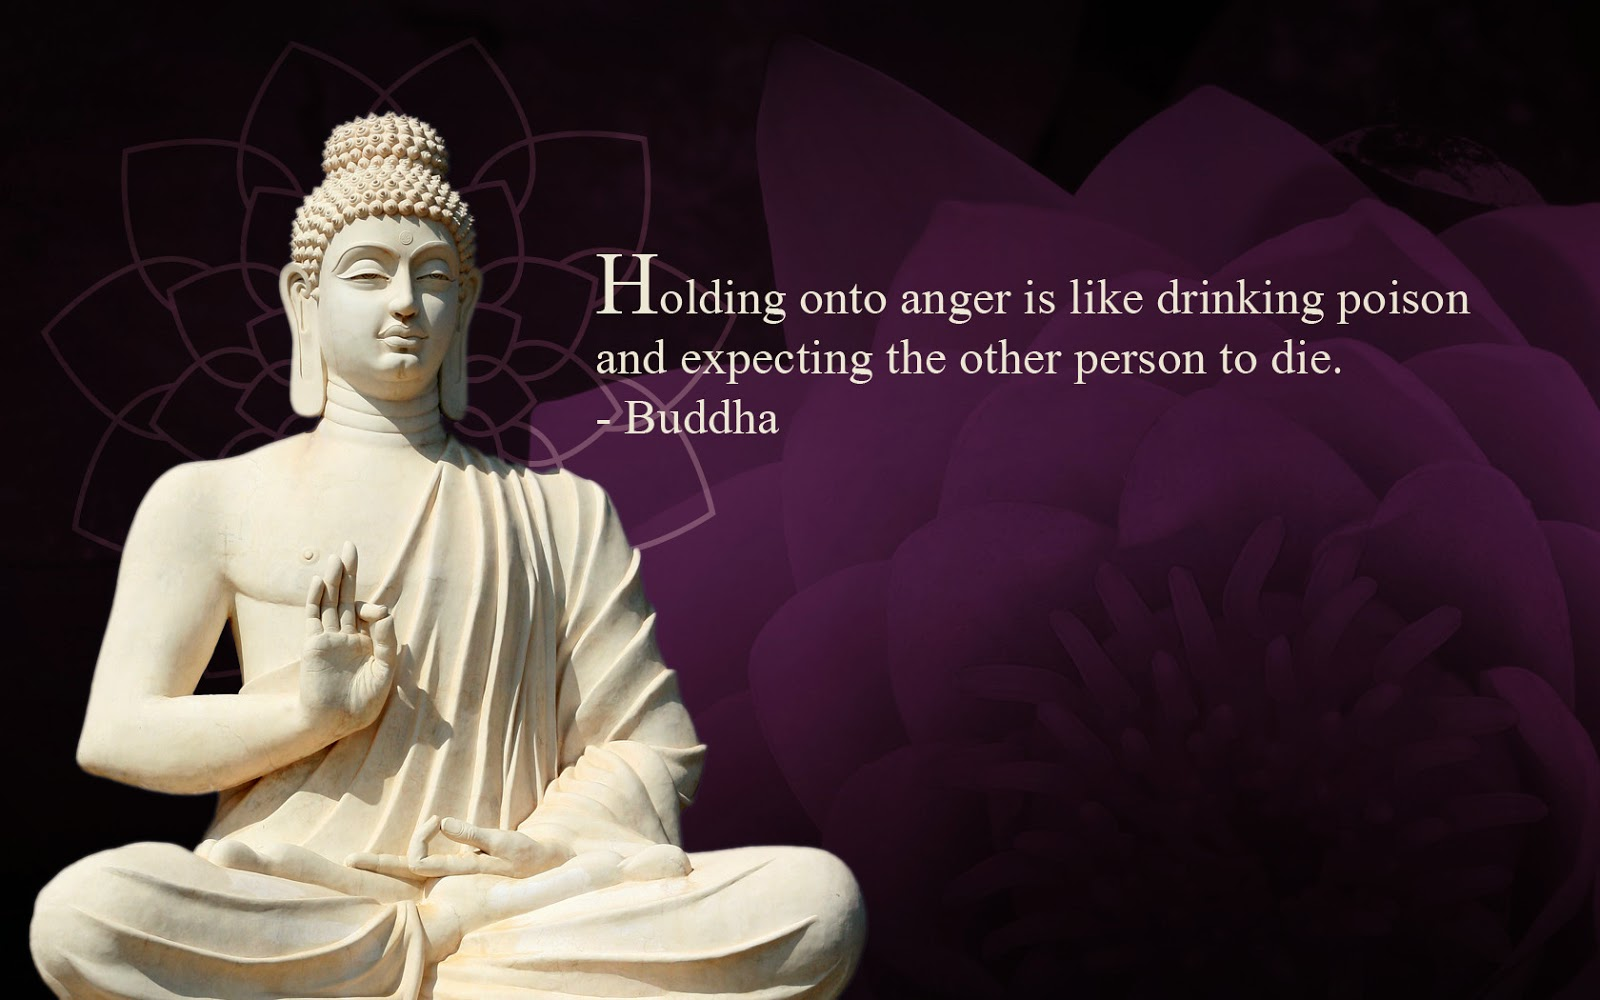 buddha quote on anger image hd download jpg buddha quotesQuotes About Karma Buddha